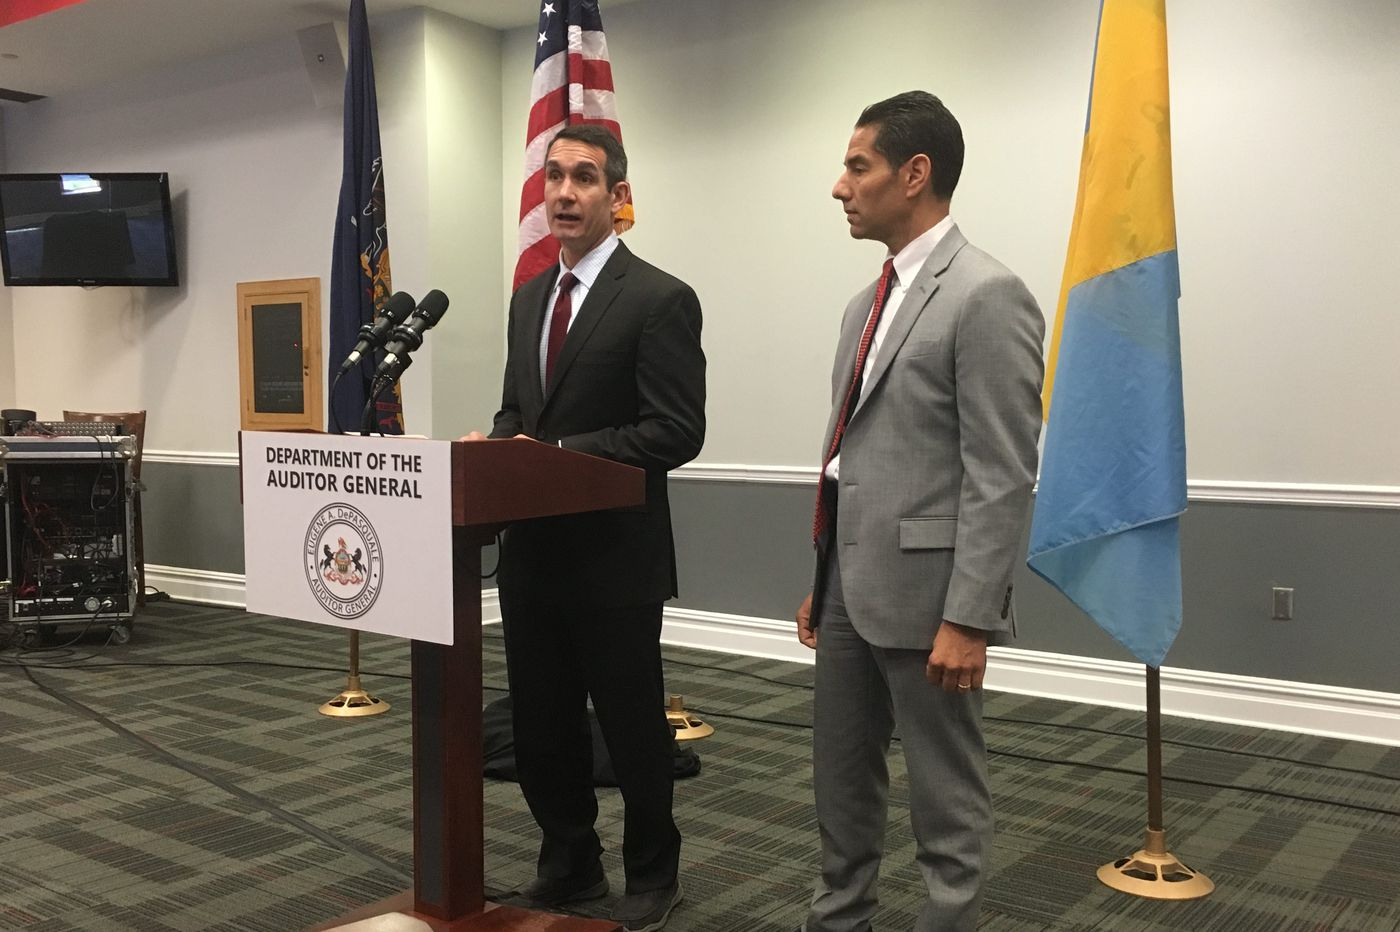 Pa. auditor general to audit Temple University; business school and tuition hikes are areas of focus